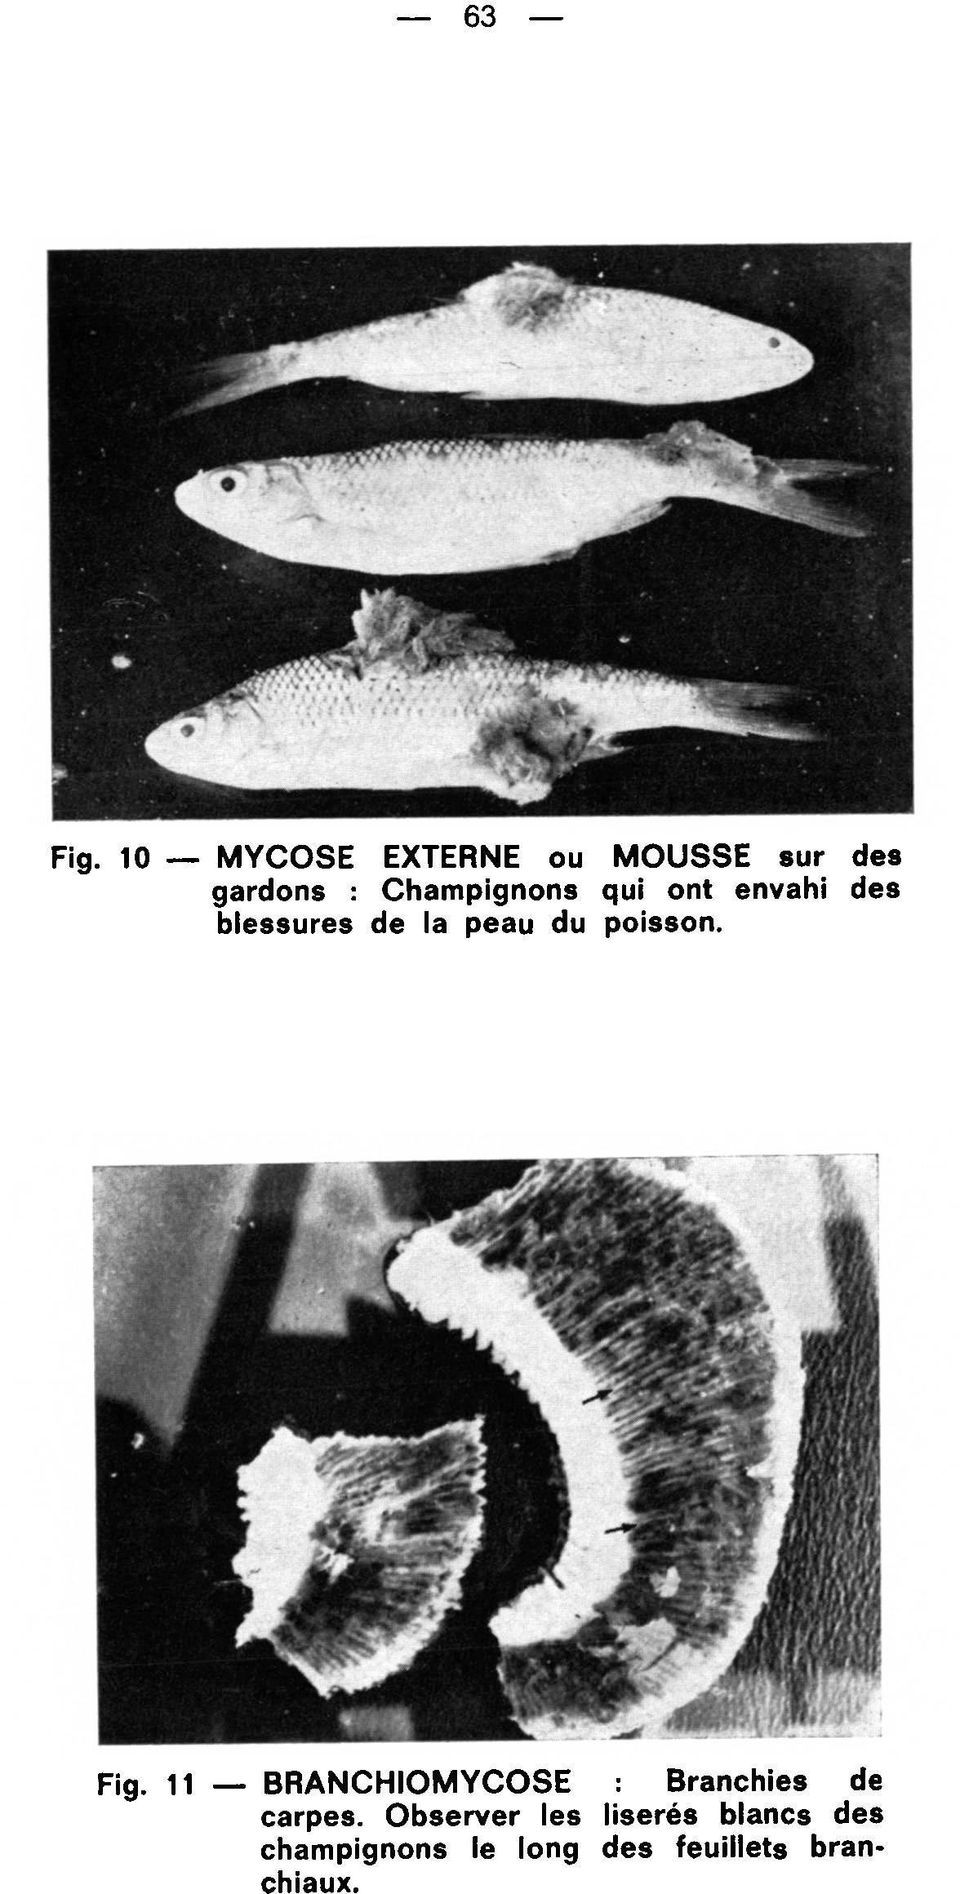 poisson. Fig. 11 BRANCHIOMYCOSE Branchies de carpes.